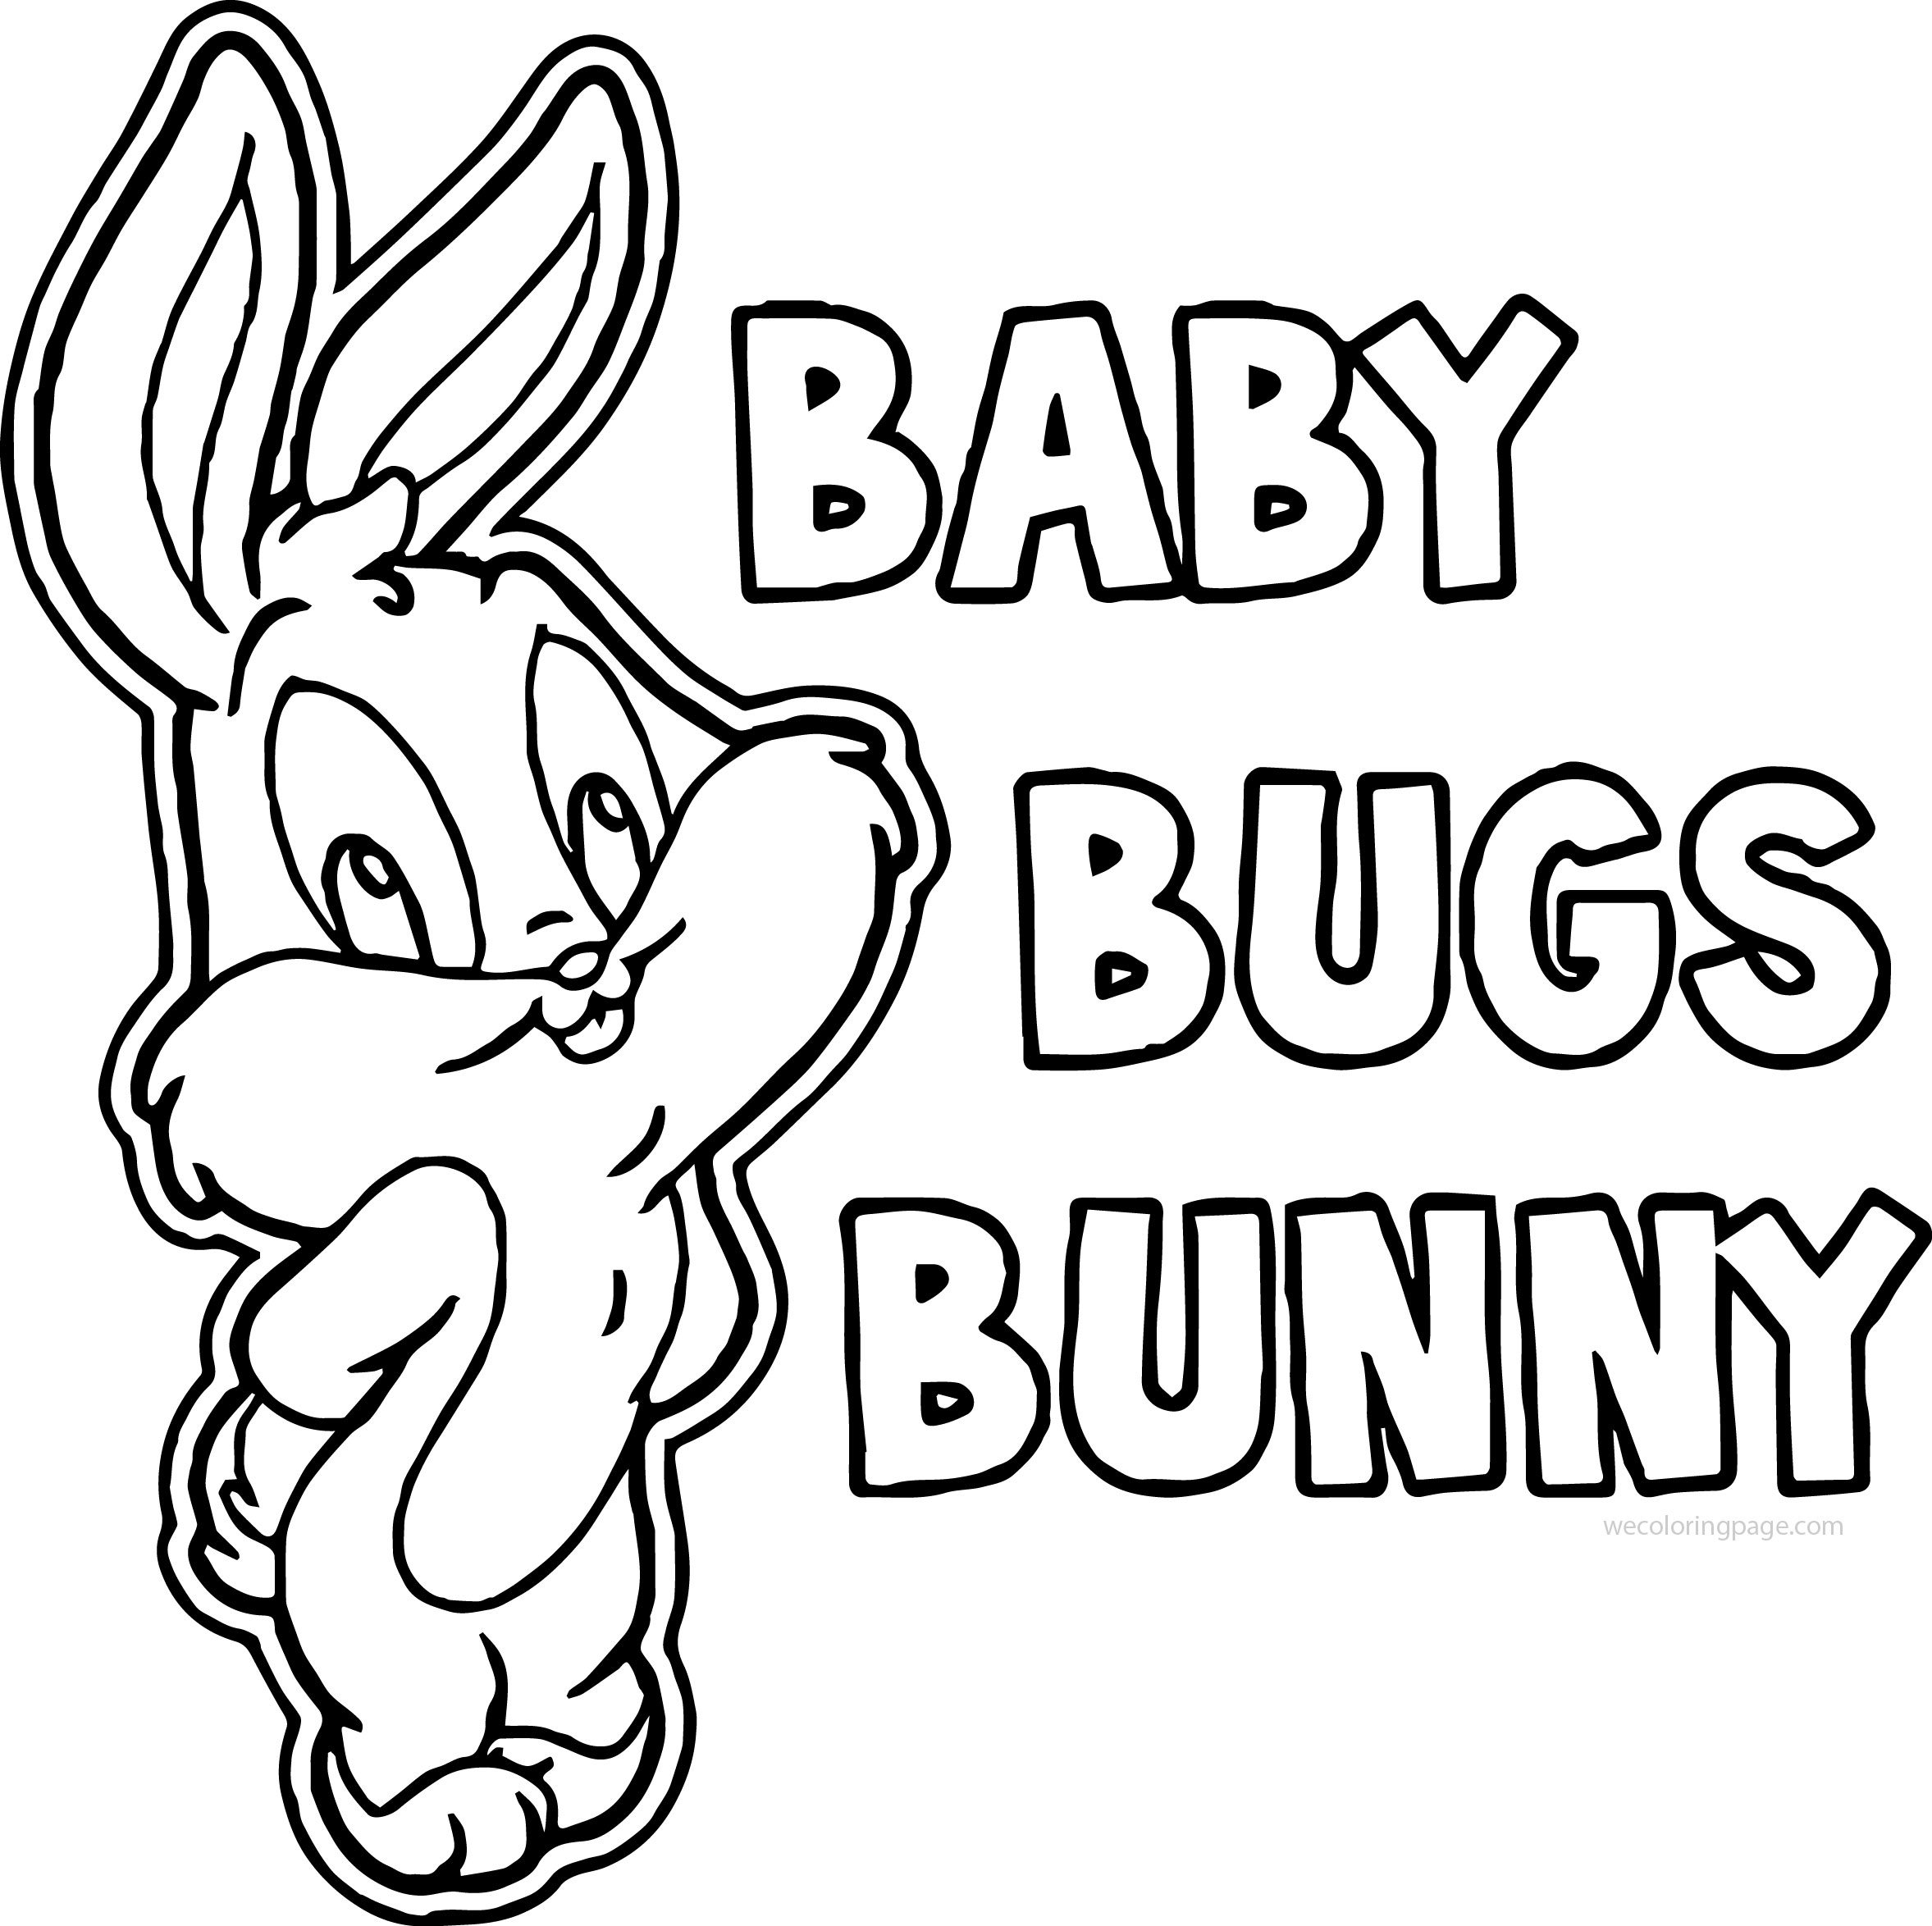 perfect baby bugs bunny coloring page wecoloringpagecom